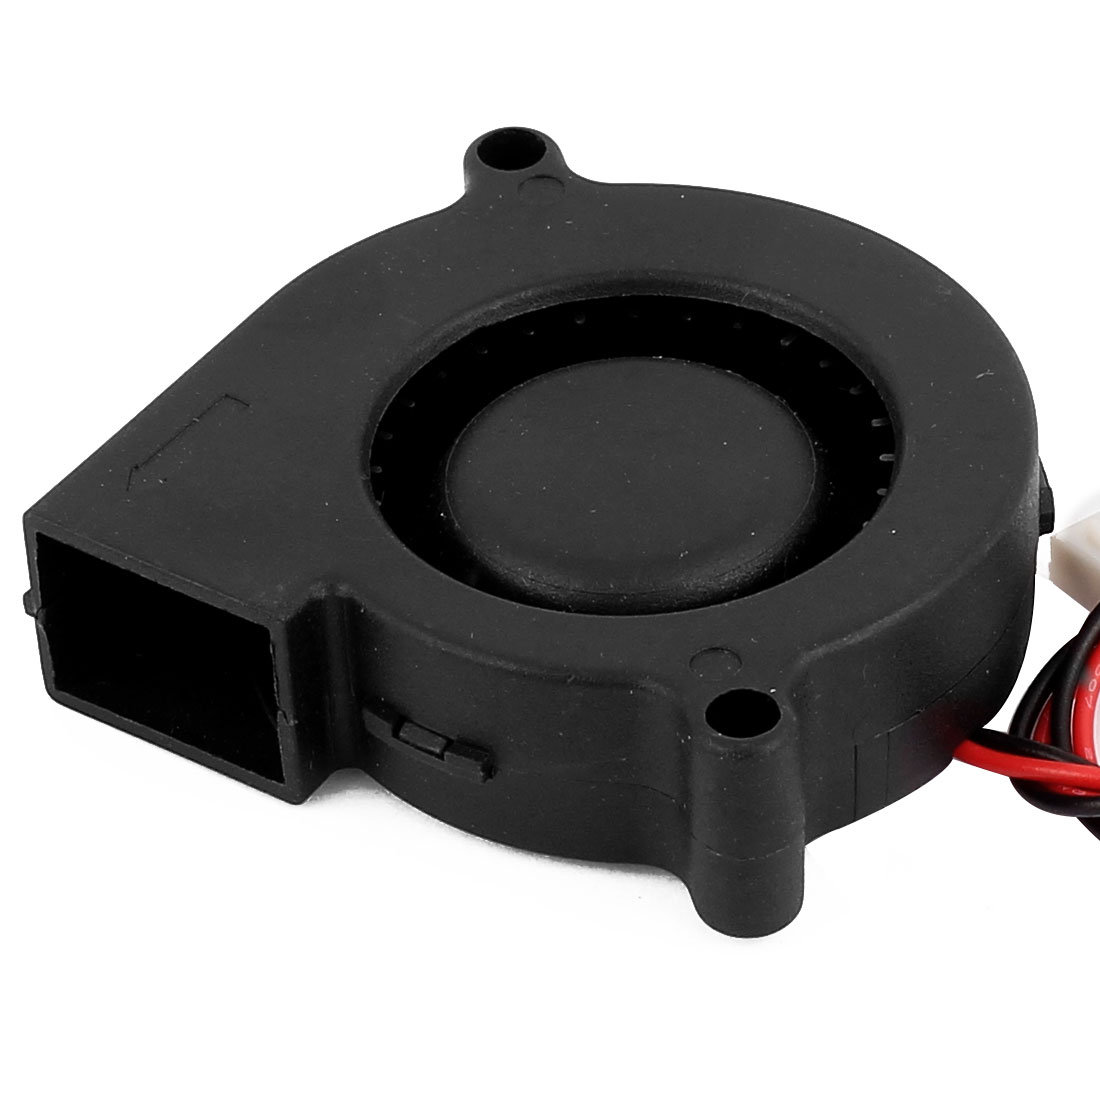 DC Brushless 2 Wires Case Cooling Blower Fan 50x50x15mm Black DC 24V 2Pcs - image 1 of 3